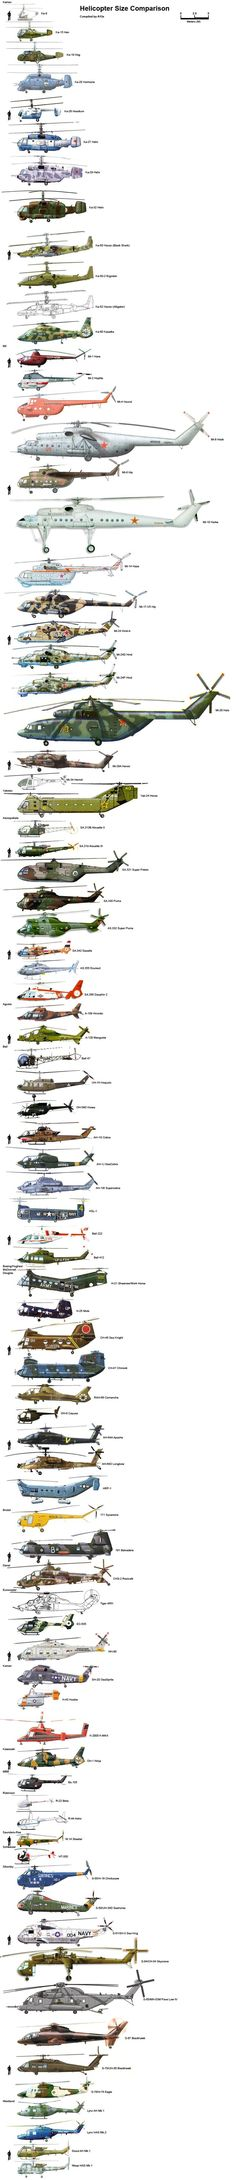 comparaison taille helicoptere comparaison taille helicoptere: